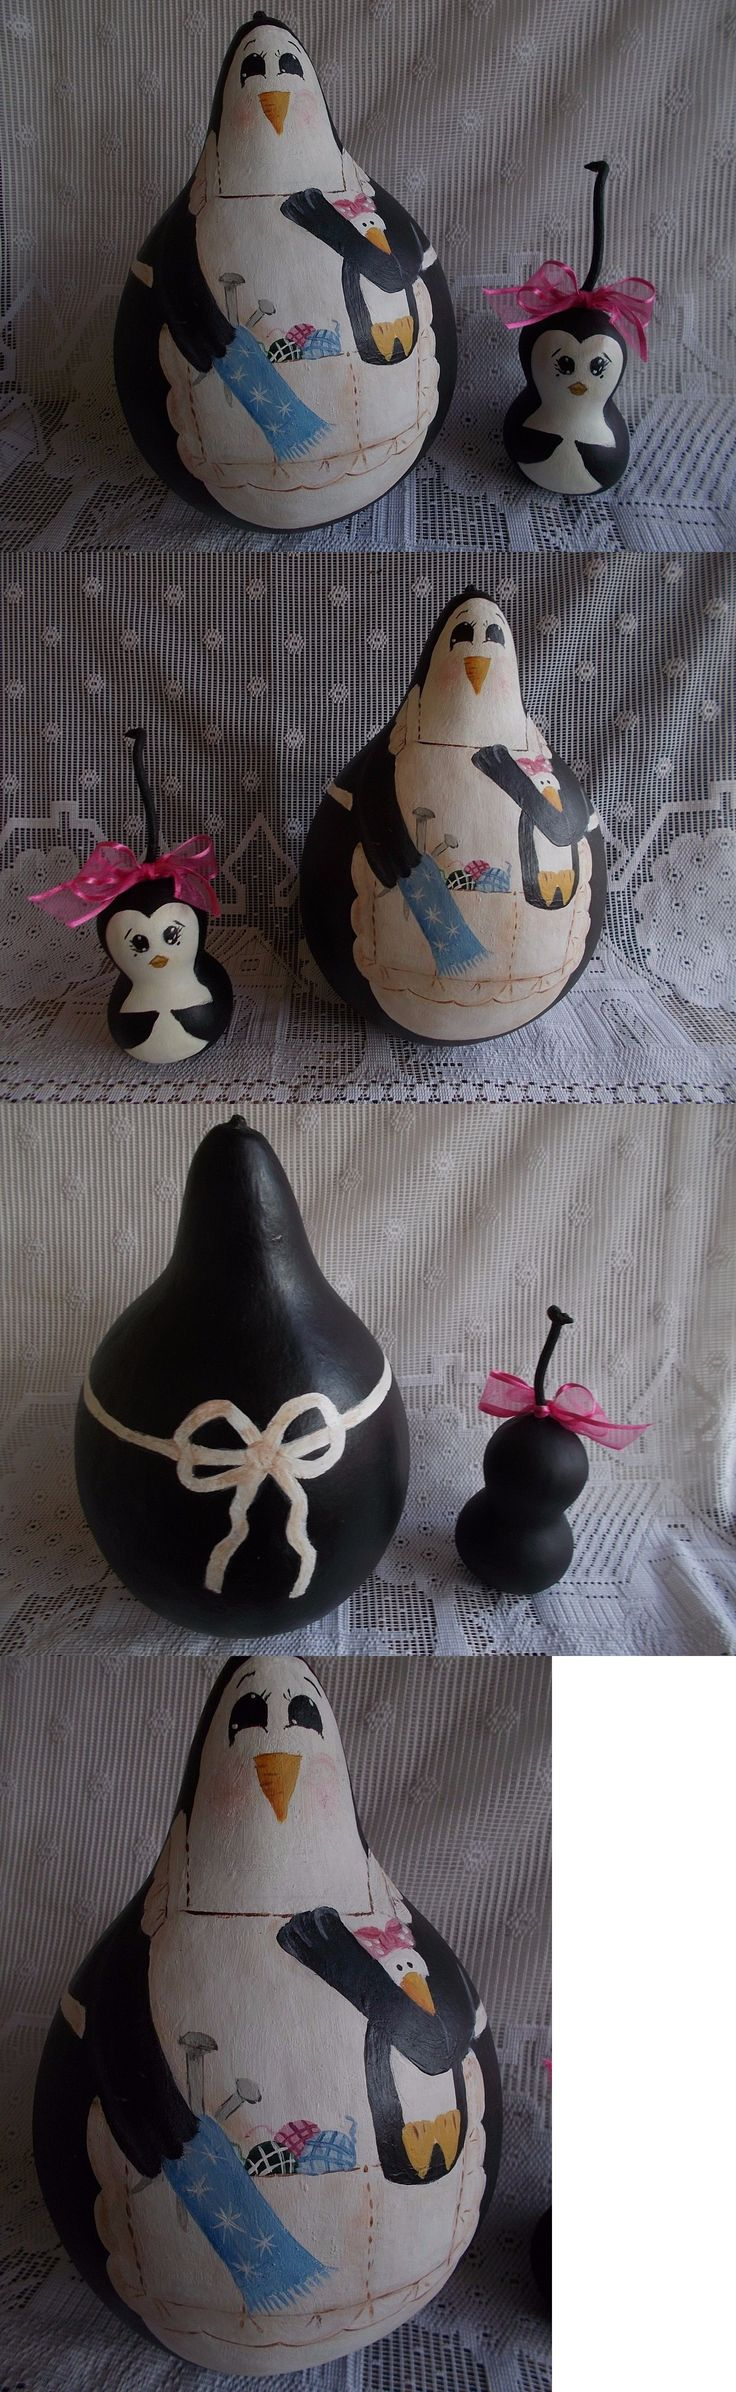 Handpainted Items 71186: (2) Hand Painted Gourd Penguins - Mother 22 Rd X10 Tall And Baby 9 Rd.X 5 Tall -> BUY IT NOW ONLY: $39 on eBay!